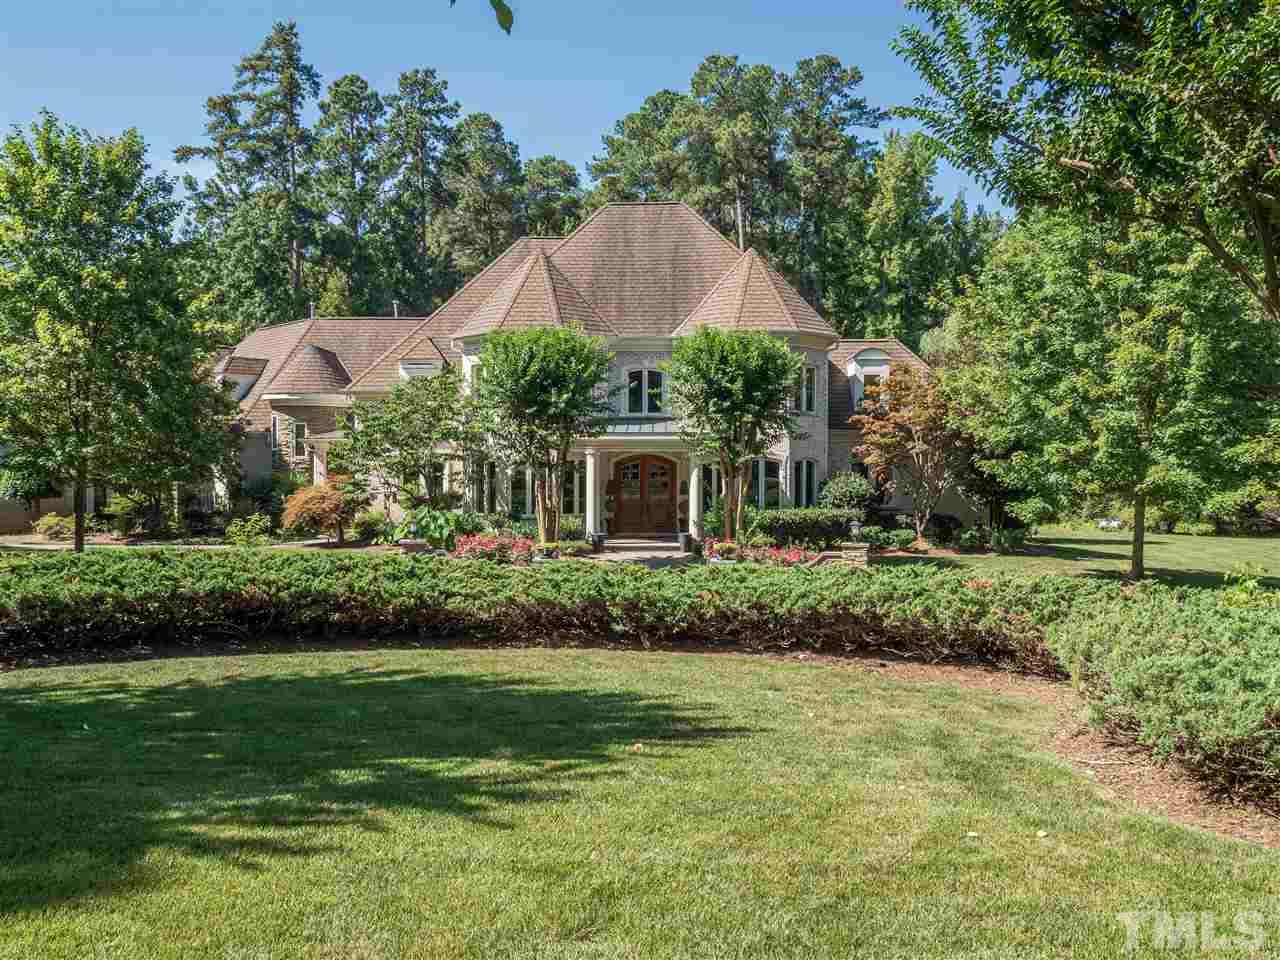 Photo of 101 Marseille Place, Cary, NC 27511